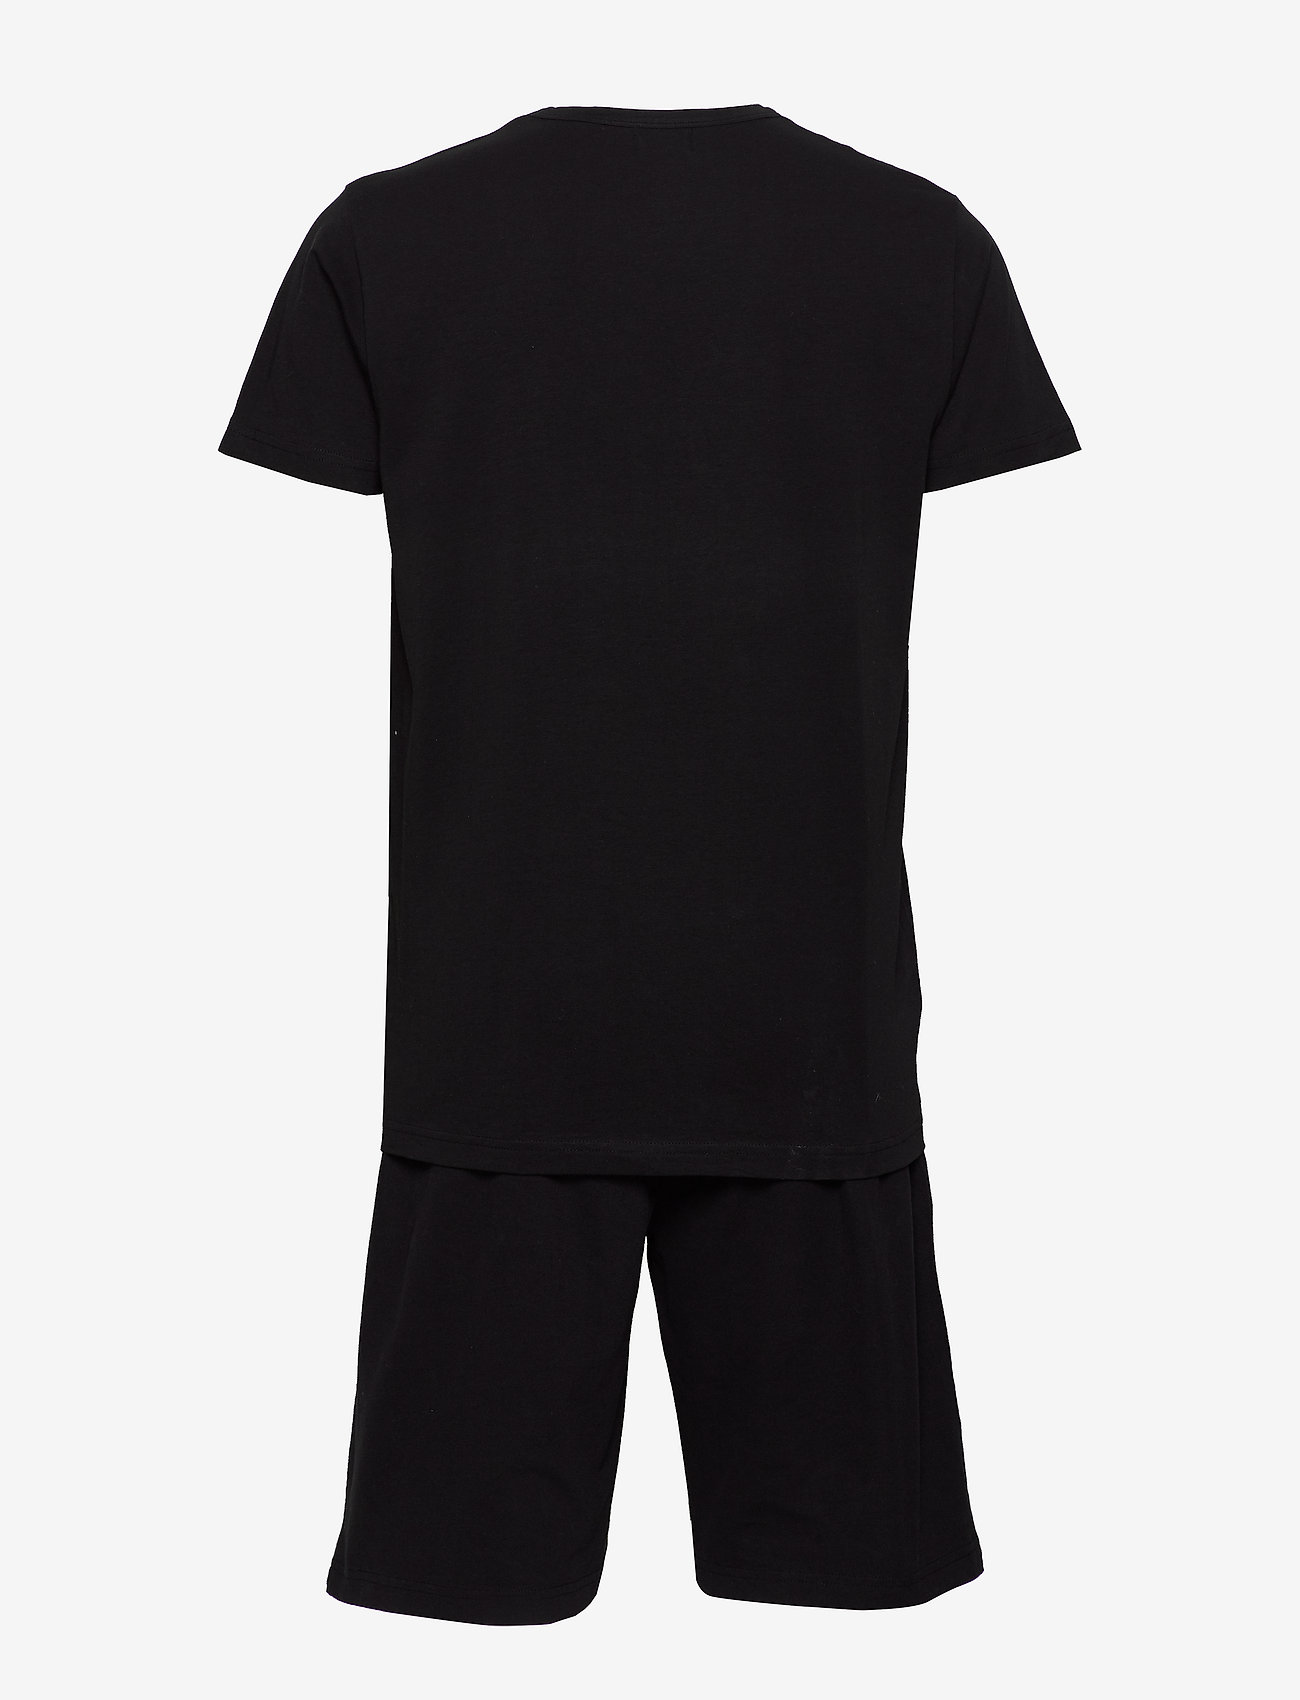 Lyle & Scott - CHARLIE - pyjamas - black - 1